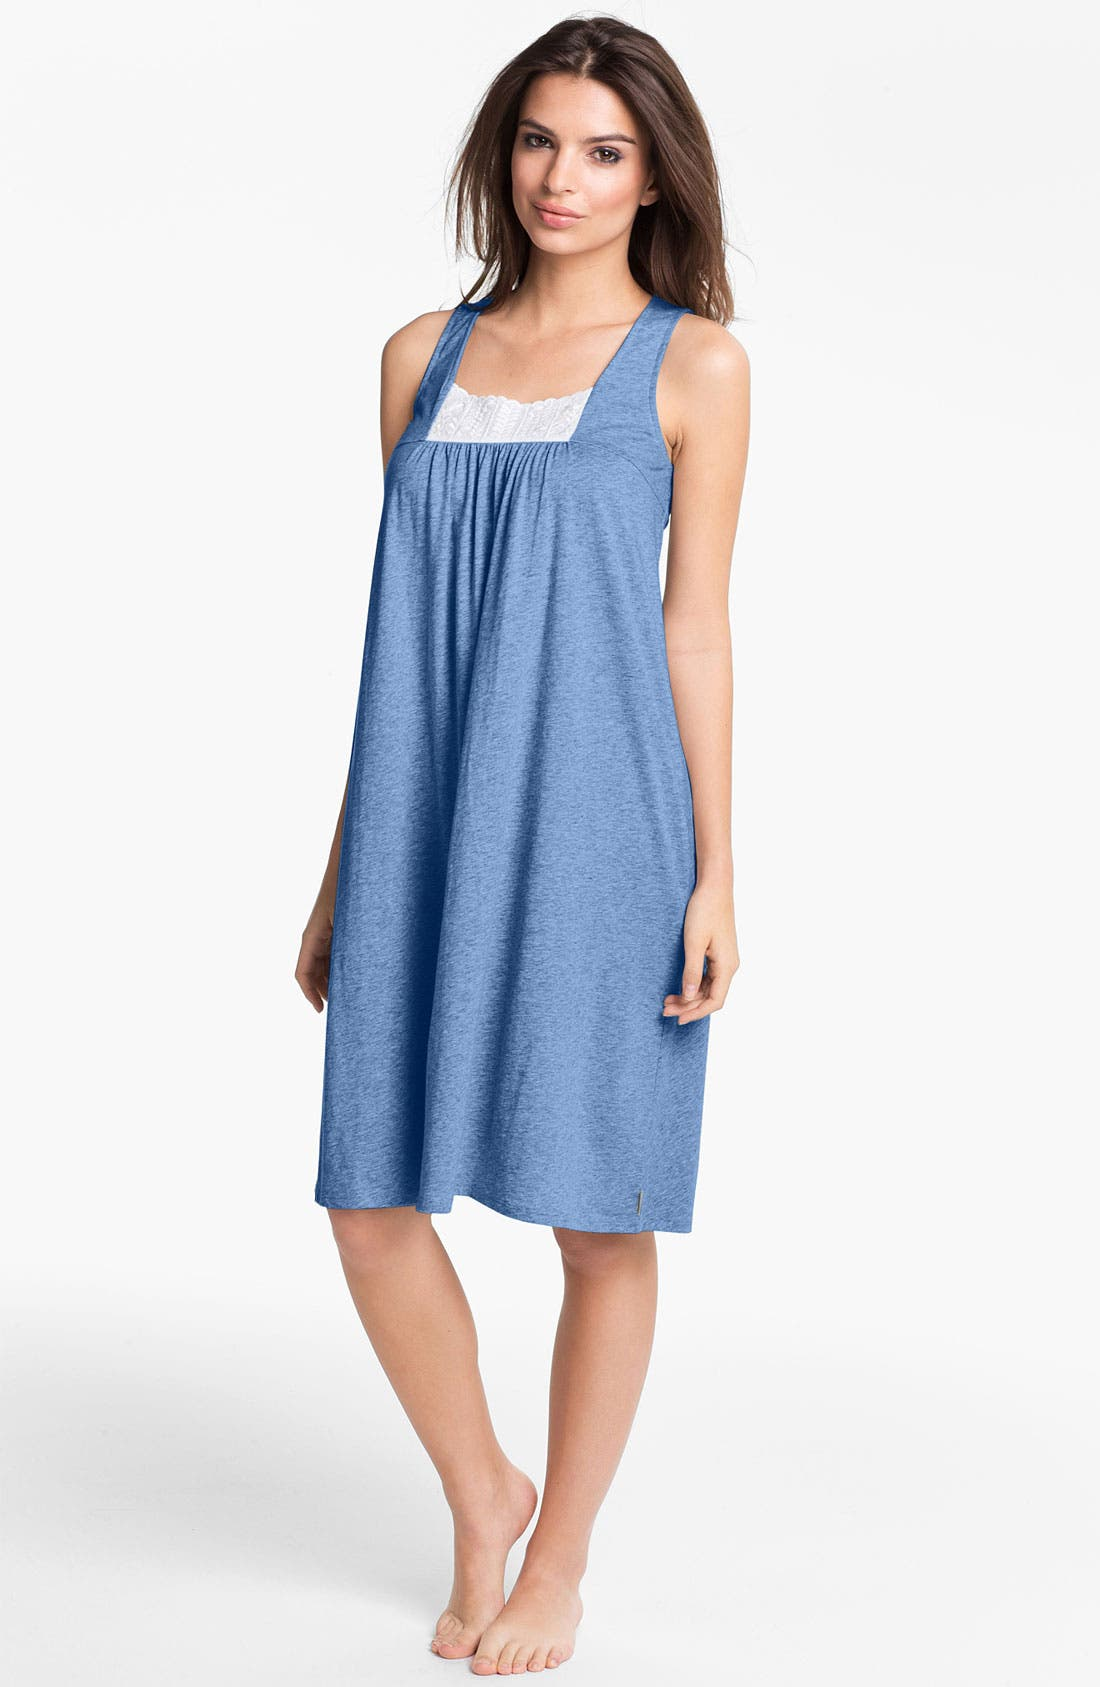 Alternate Image 1 Selected - DKNY 'Serene Dreams' Chemise